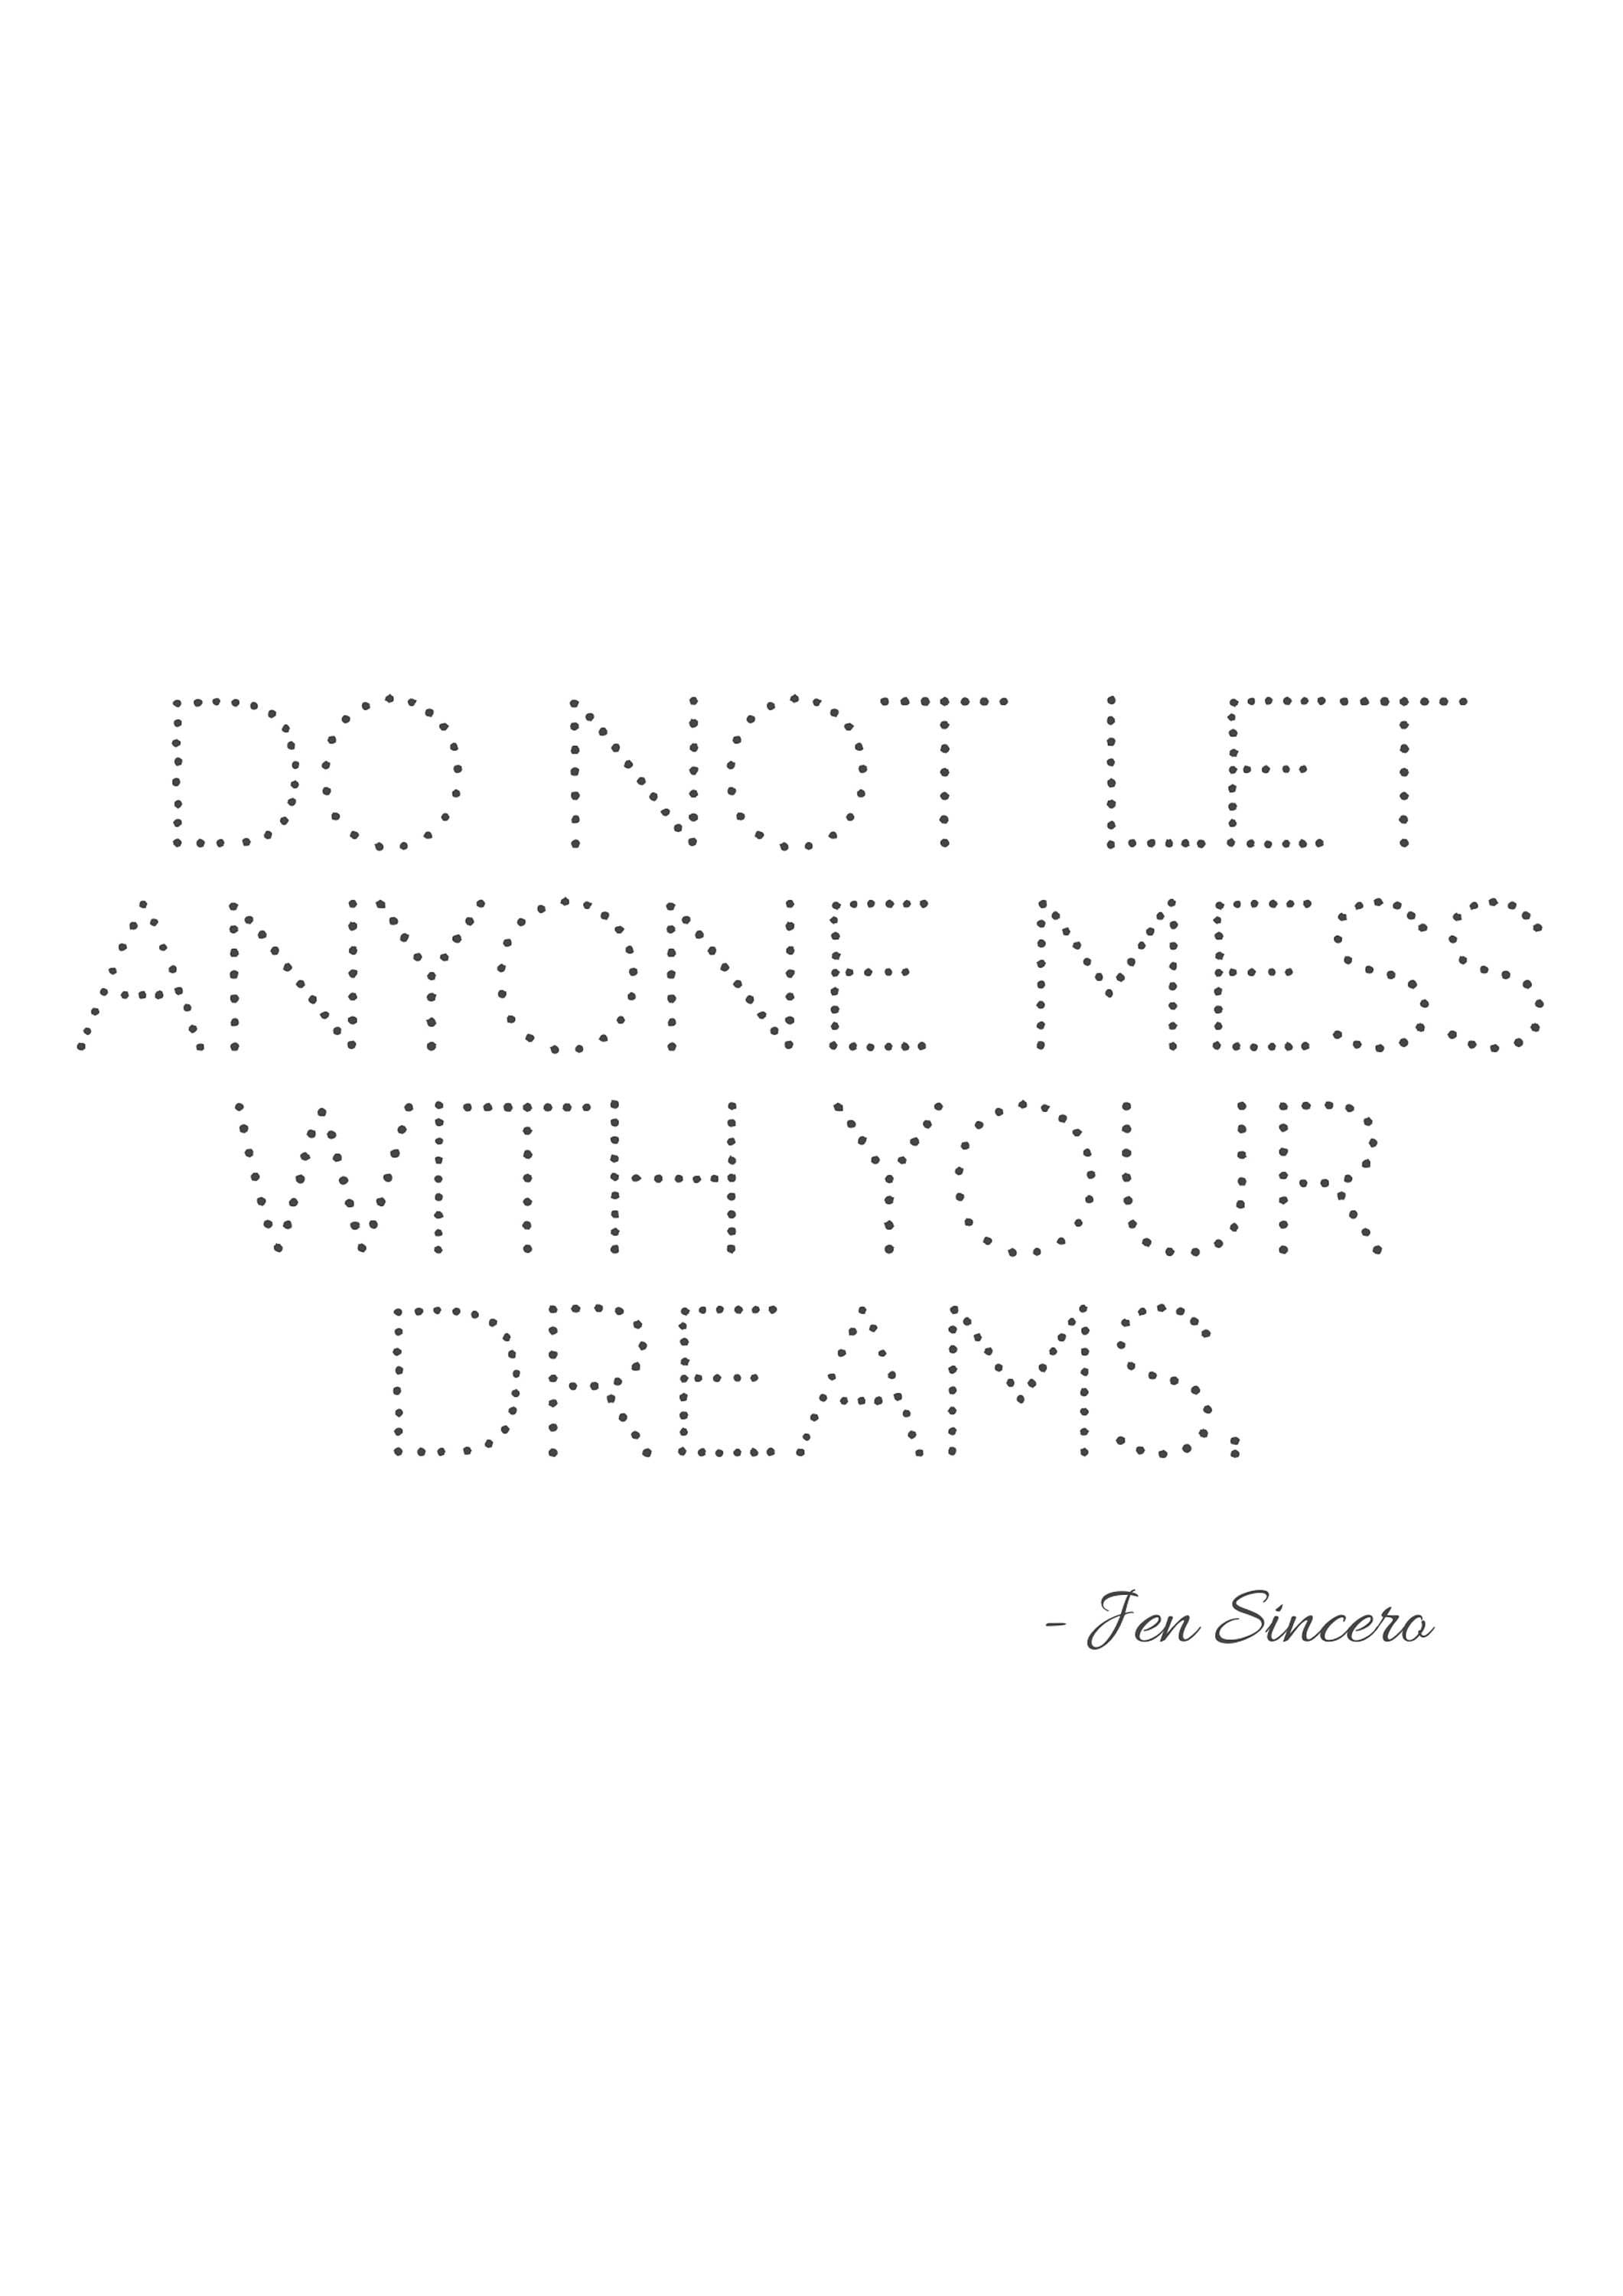 Jen Sincero Quotes Print Jen Sincero Printable Inspirational Quote  Don't Let